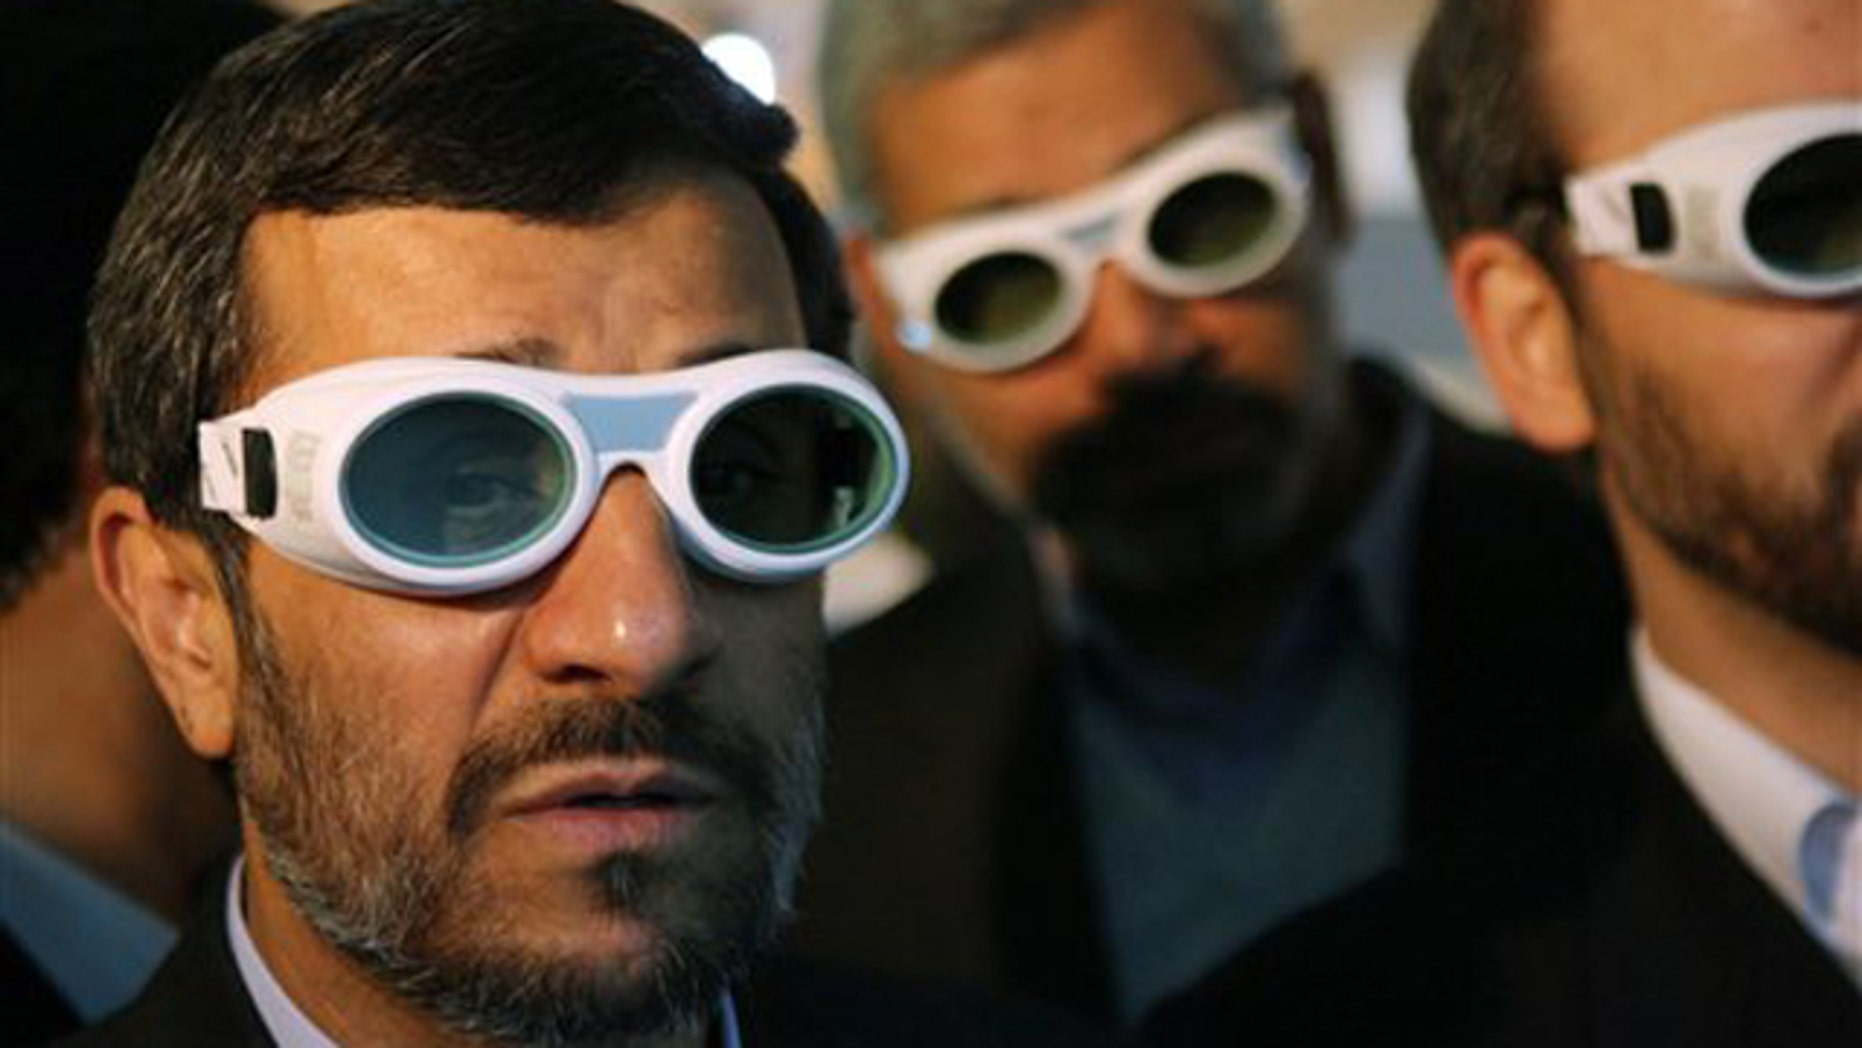 In this Feb. 7 file photo, Iranian President Mahmoud Ahmadinejad wears eye protection goggles as he visits an exhibition of Iran's laser science in Tehran.